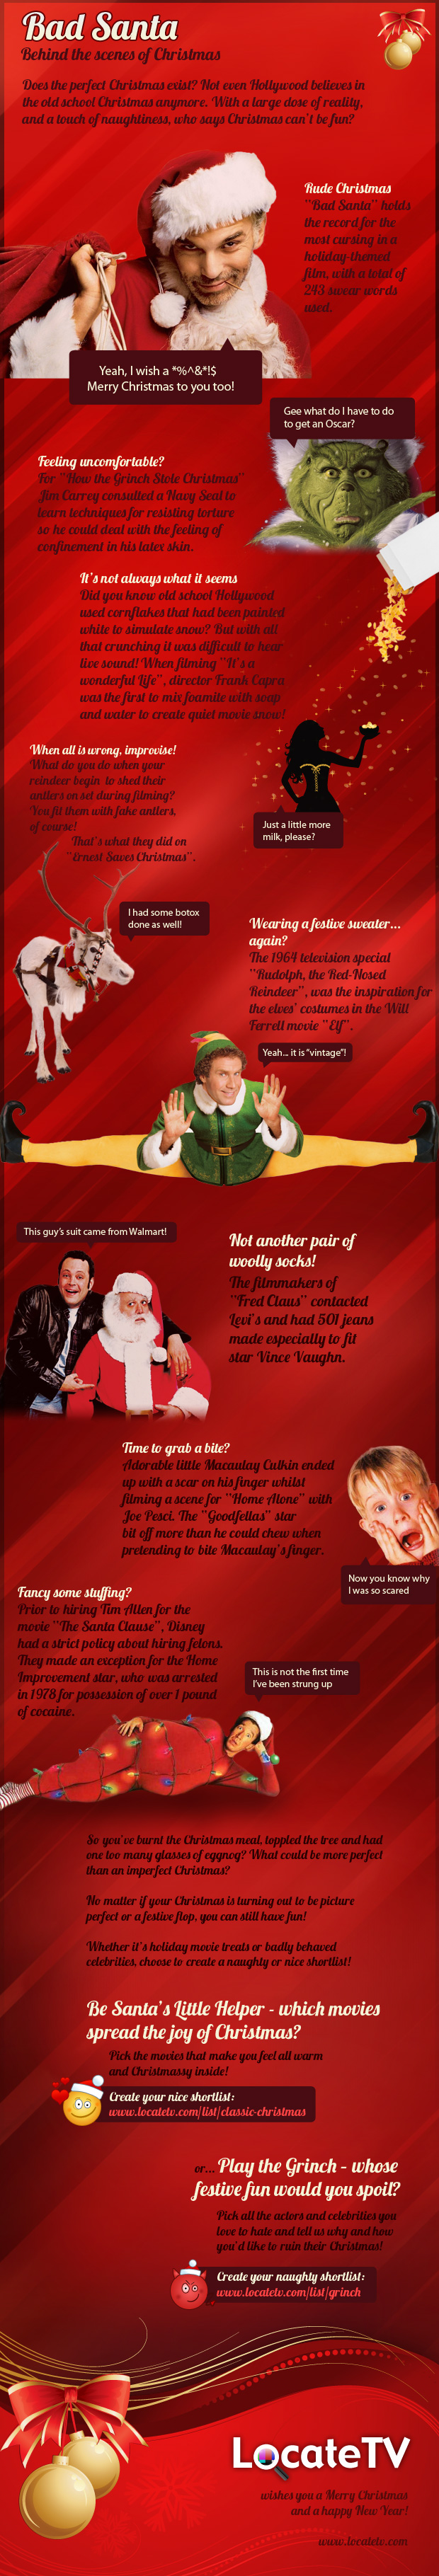 Bad Santa: Behind the Scenes of Christmas [INFOGRAPHIC ...